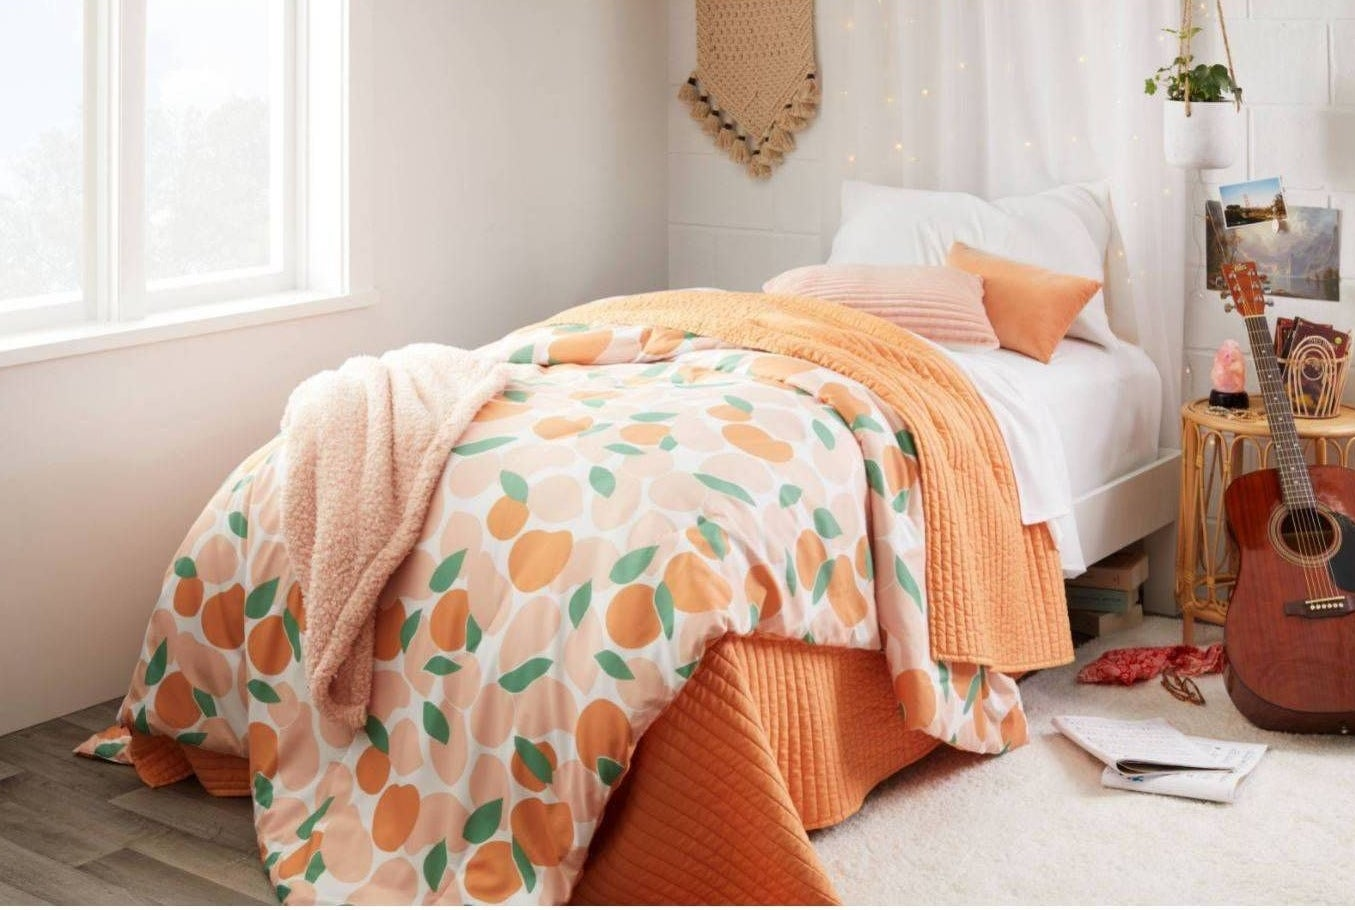 peach comforter on a twin-sized bed